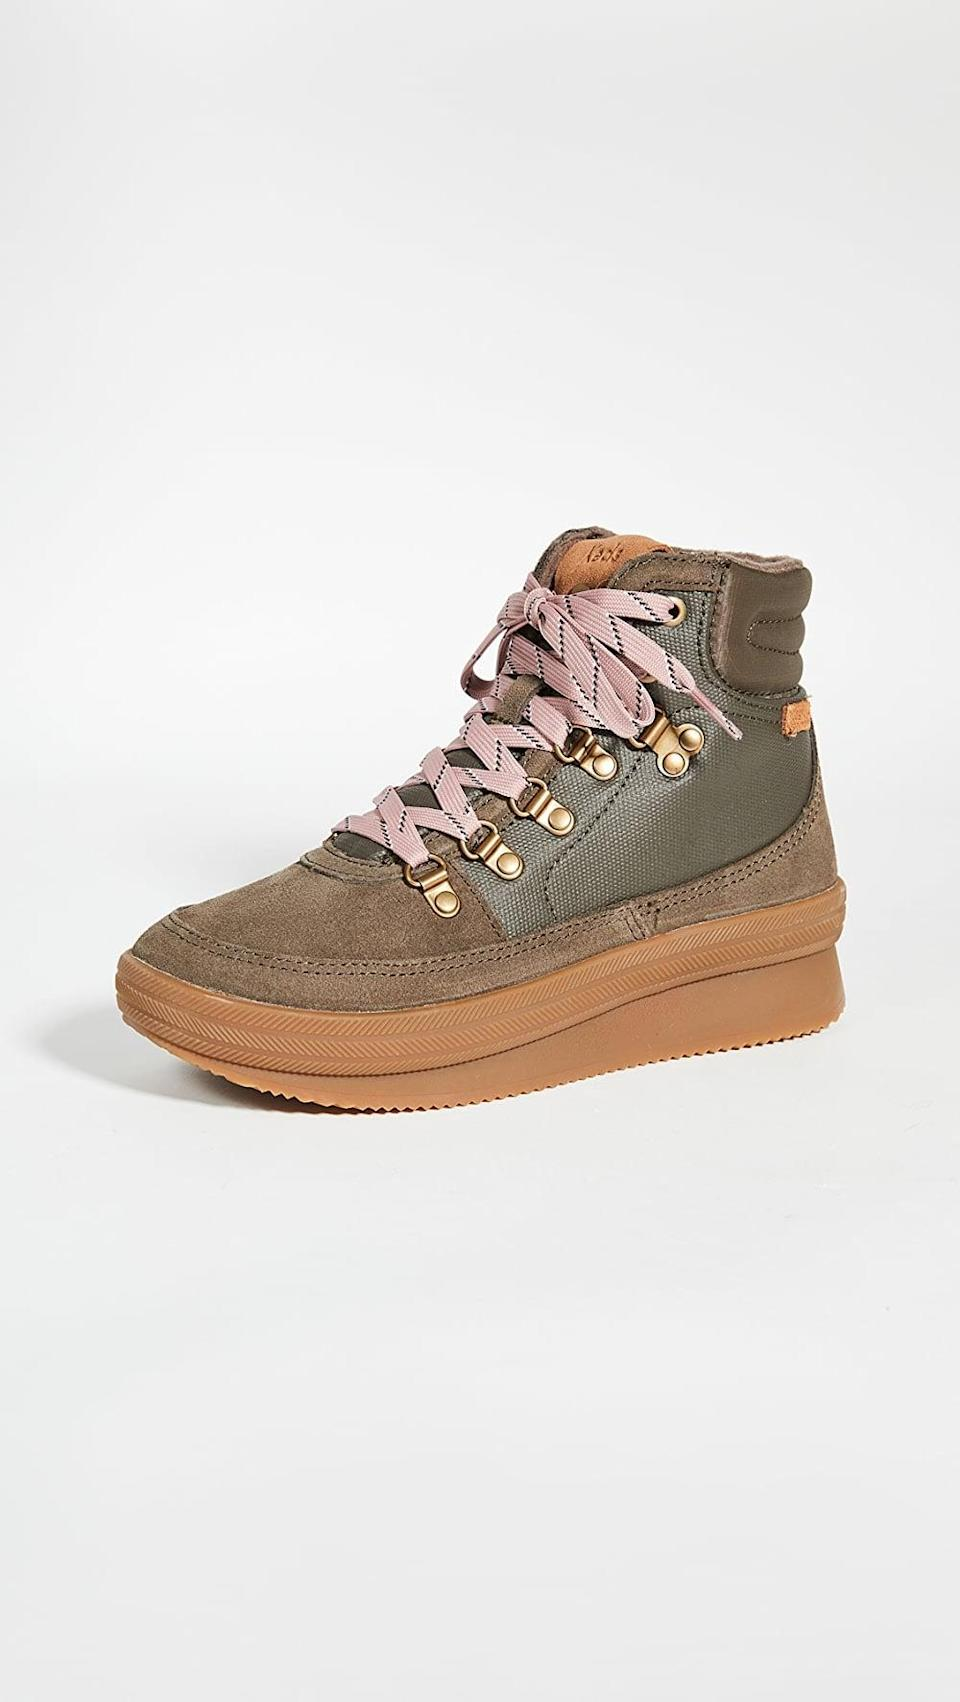 <p><span>Keds Midland Waxed Canvas Sneaker Boots</span> ($110)</p>